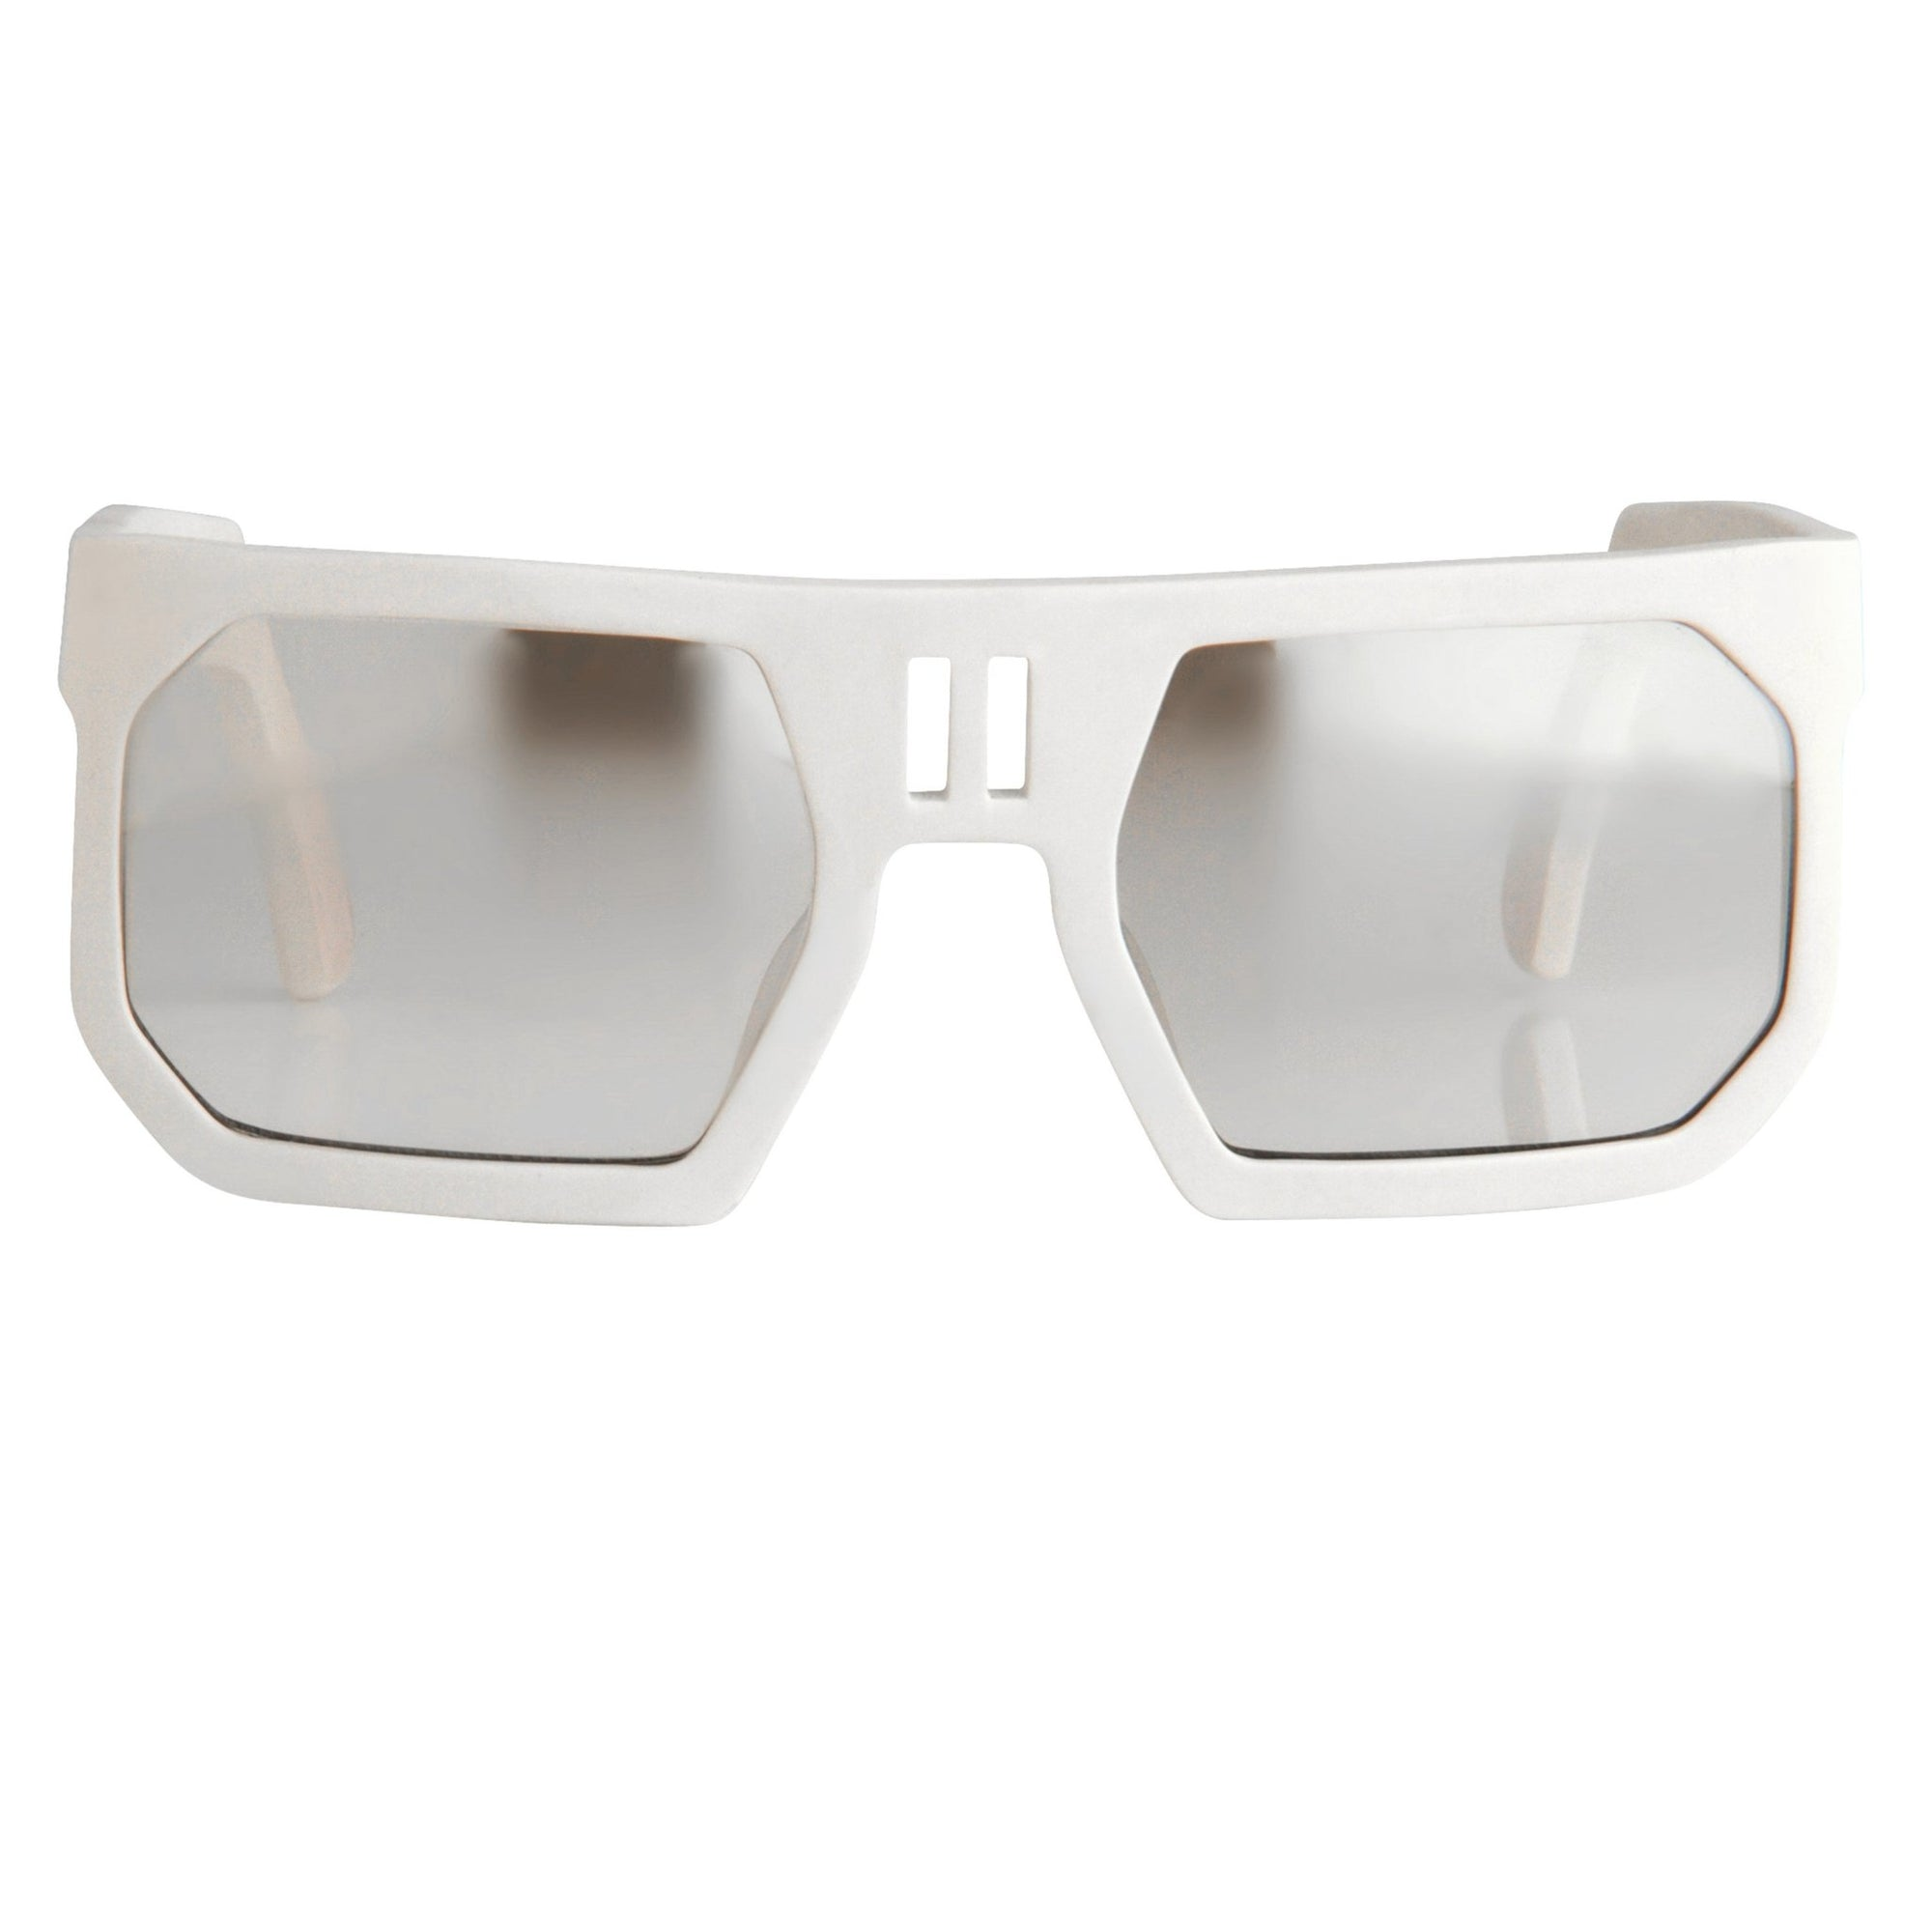 Boris Bidjan Saberi Sunglasses Rectangular White With Brown Graduated Lenses BBS1C1SUN - Watches & Crystals